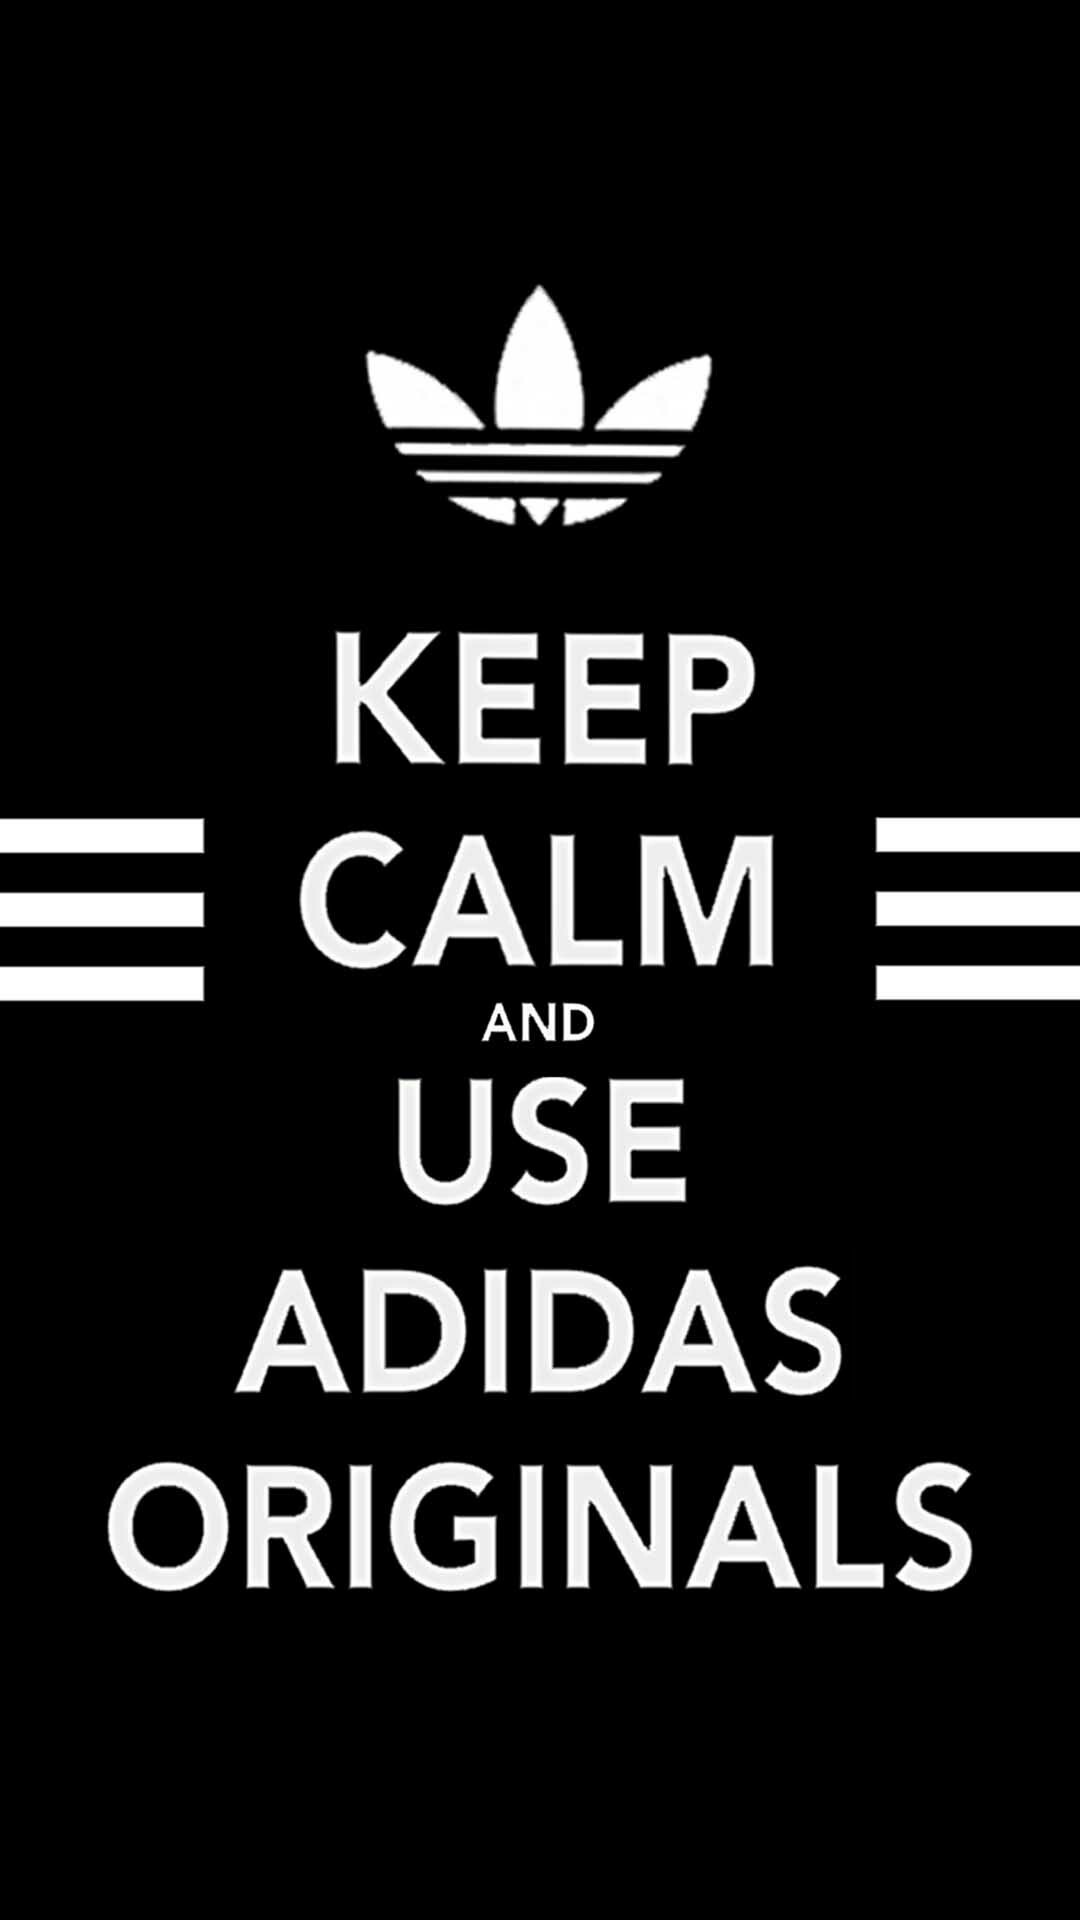 1920x1080 Adidas Wallpaper Brands Other Wallpapers. Download